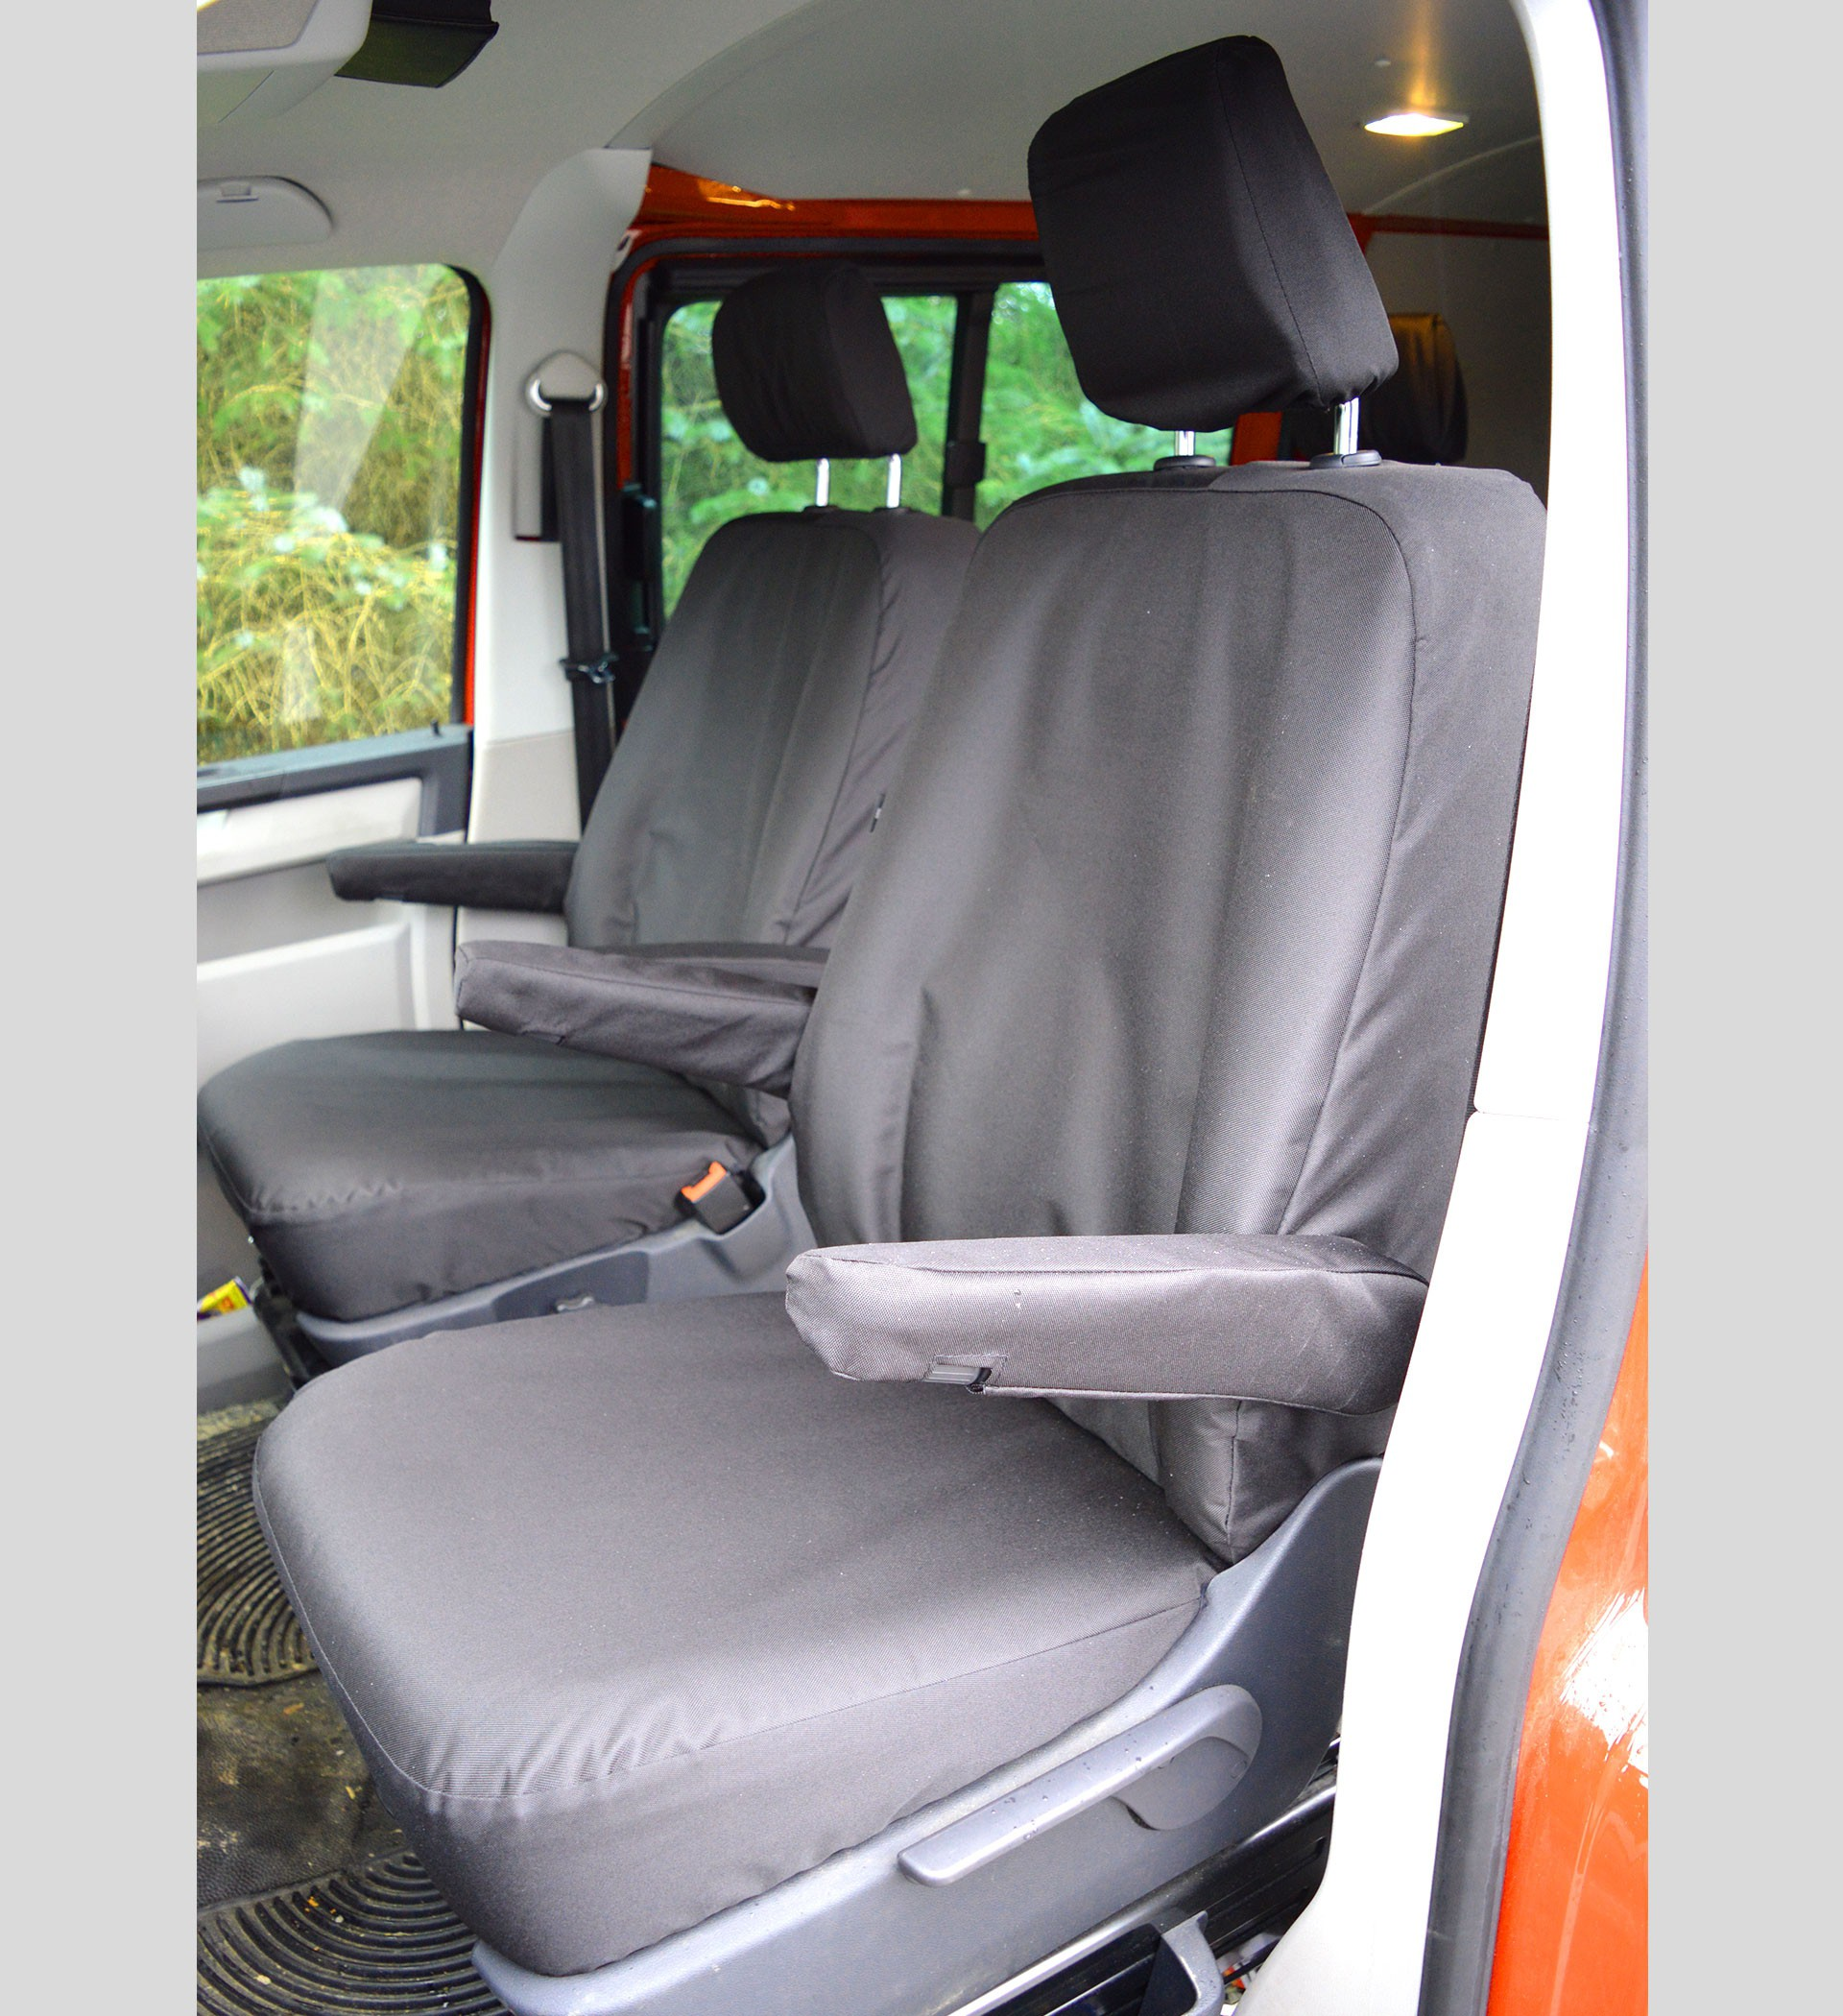 VW Transporter T6 Kombi with Captain Seats Heavy Duty Van Seat Covers - Black